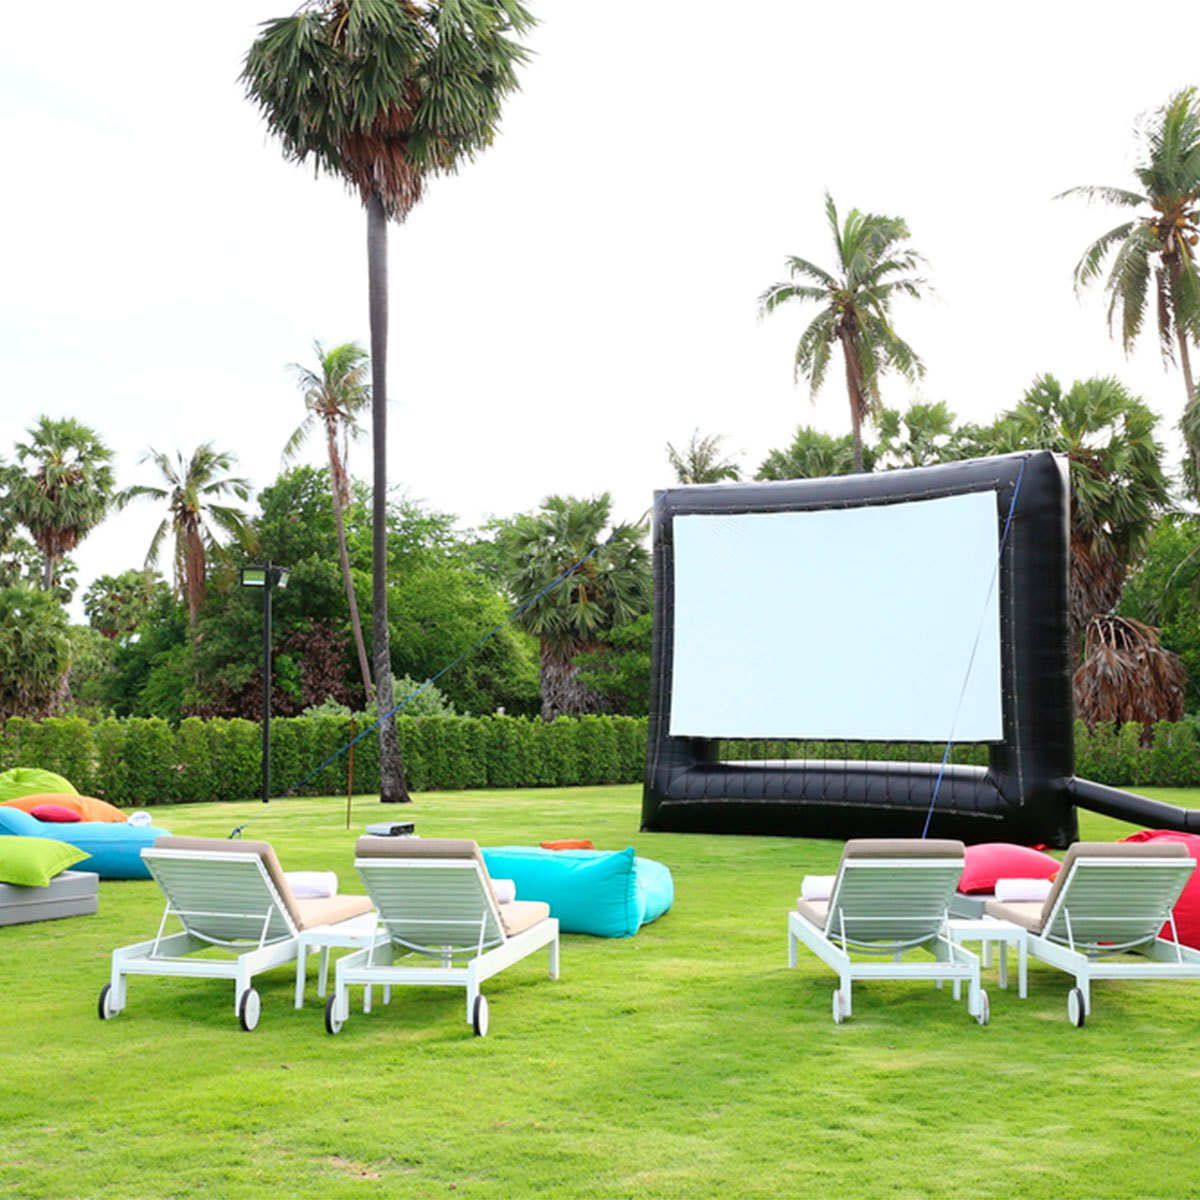 What You Need For A Diy Backyard Movie Theater The Family pertaining to Backyard Movie Ideas